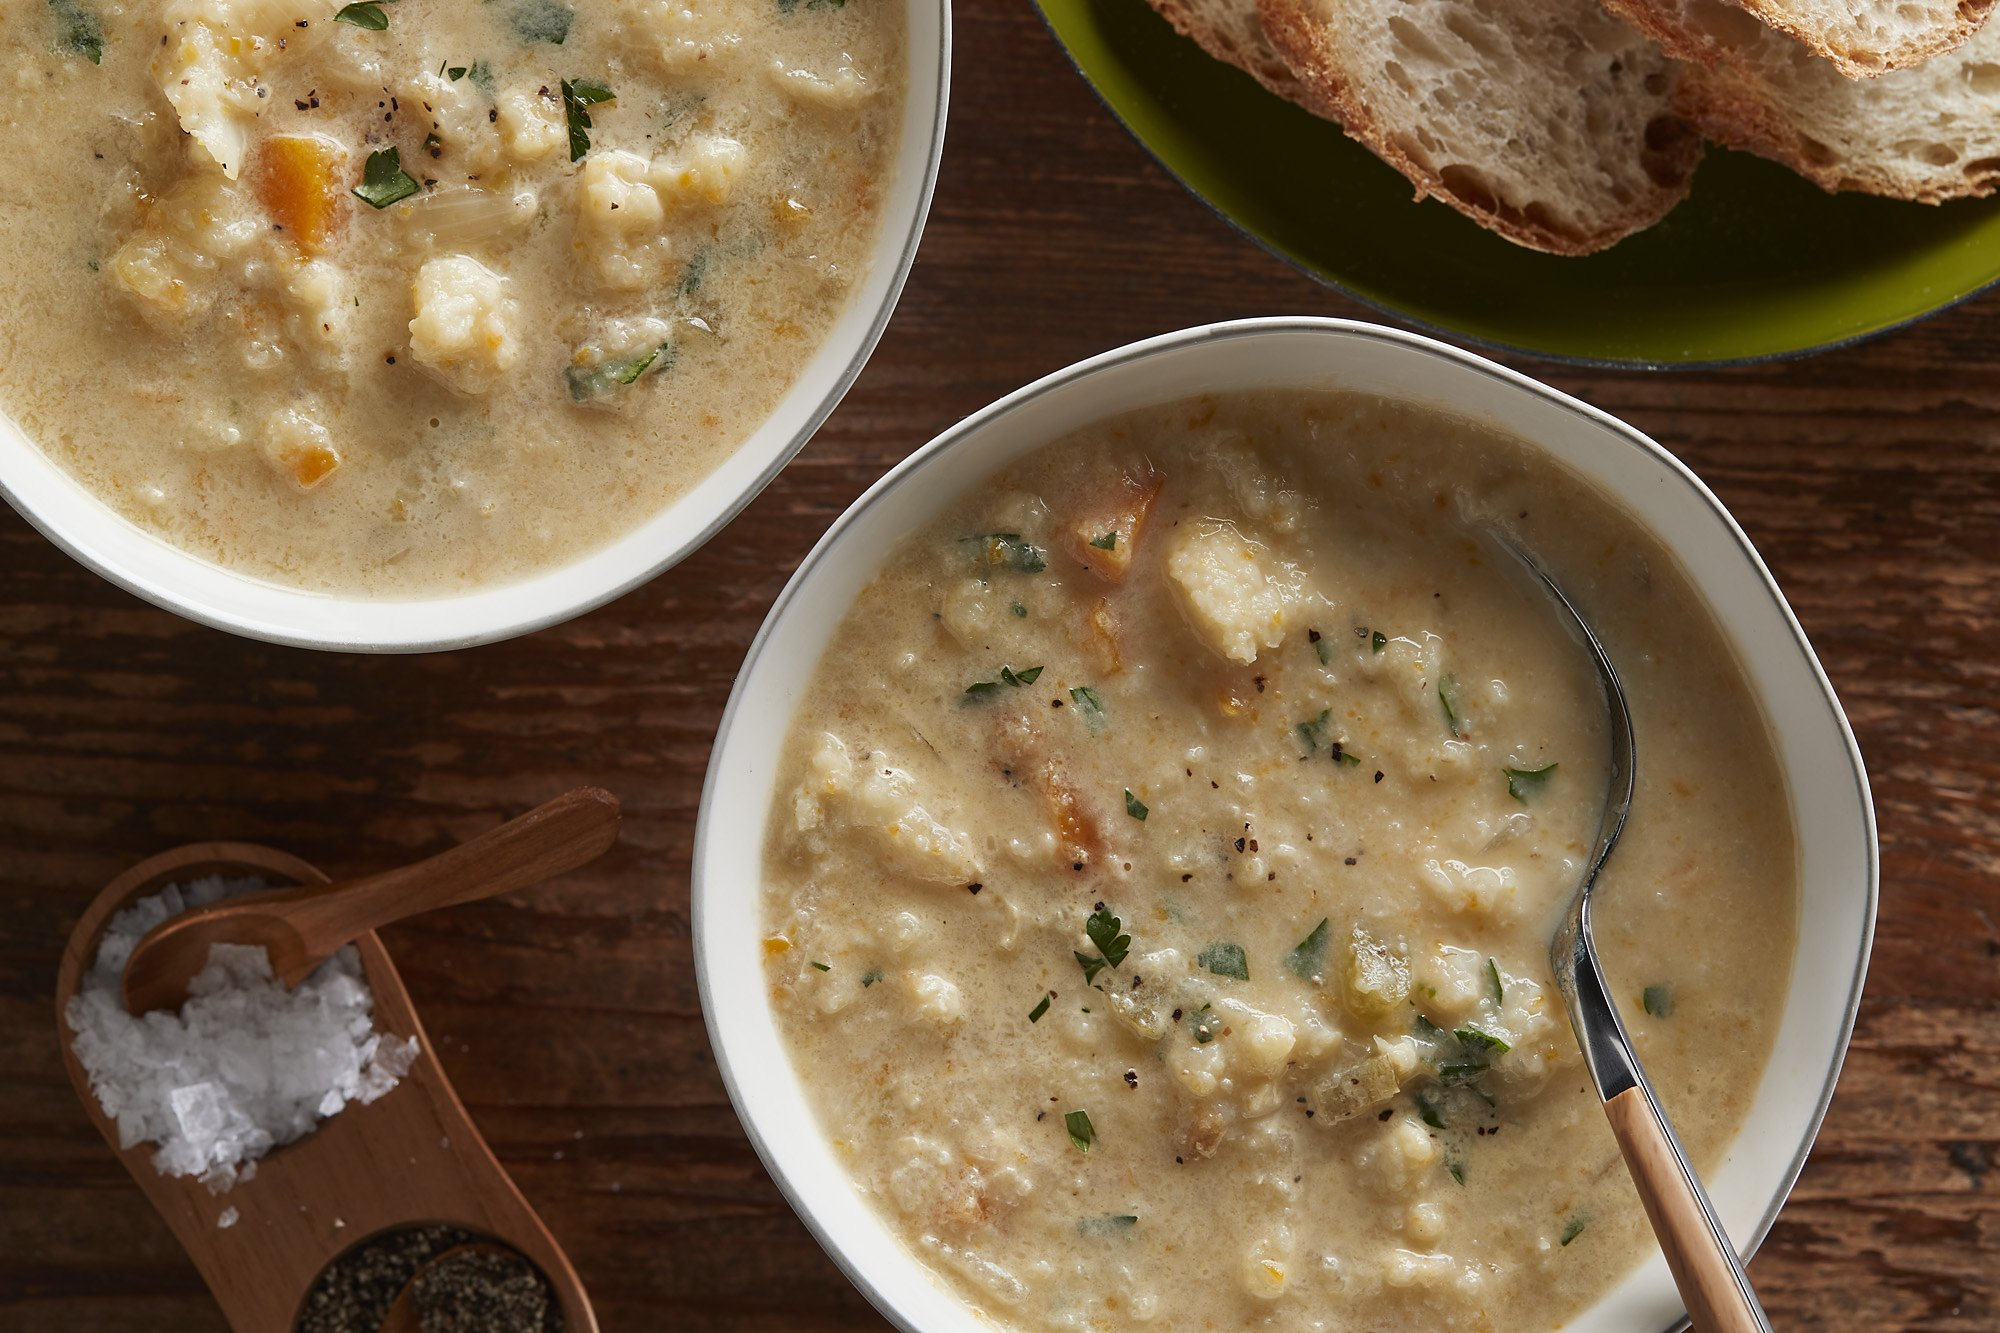 Bowls of cauliflower soup next to small containers of salt and pepper